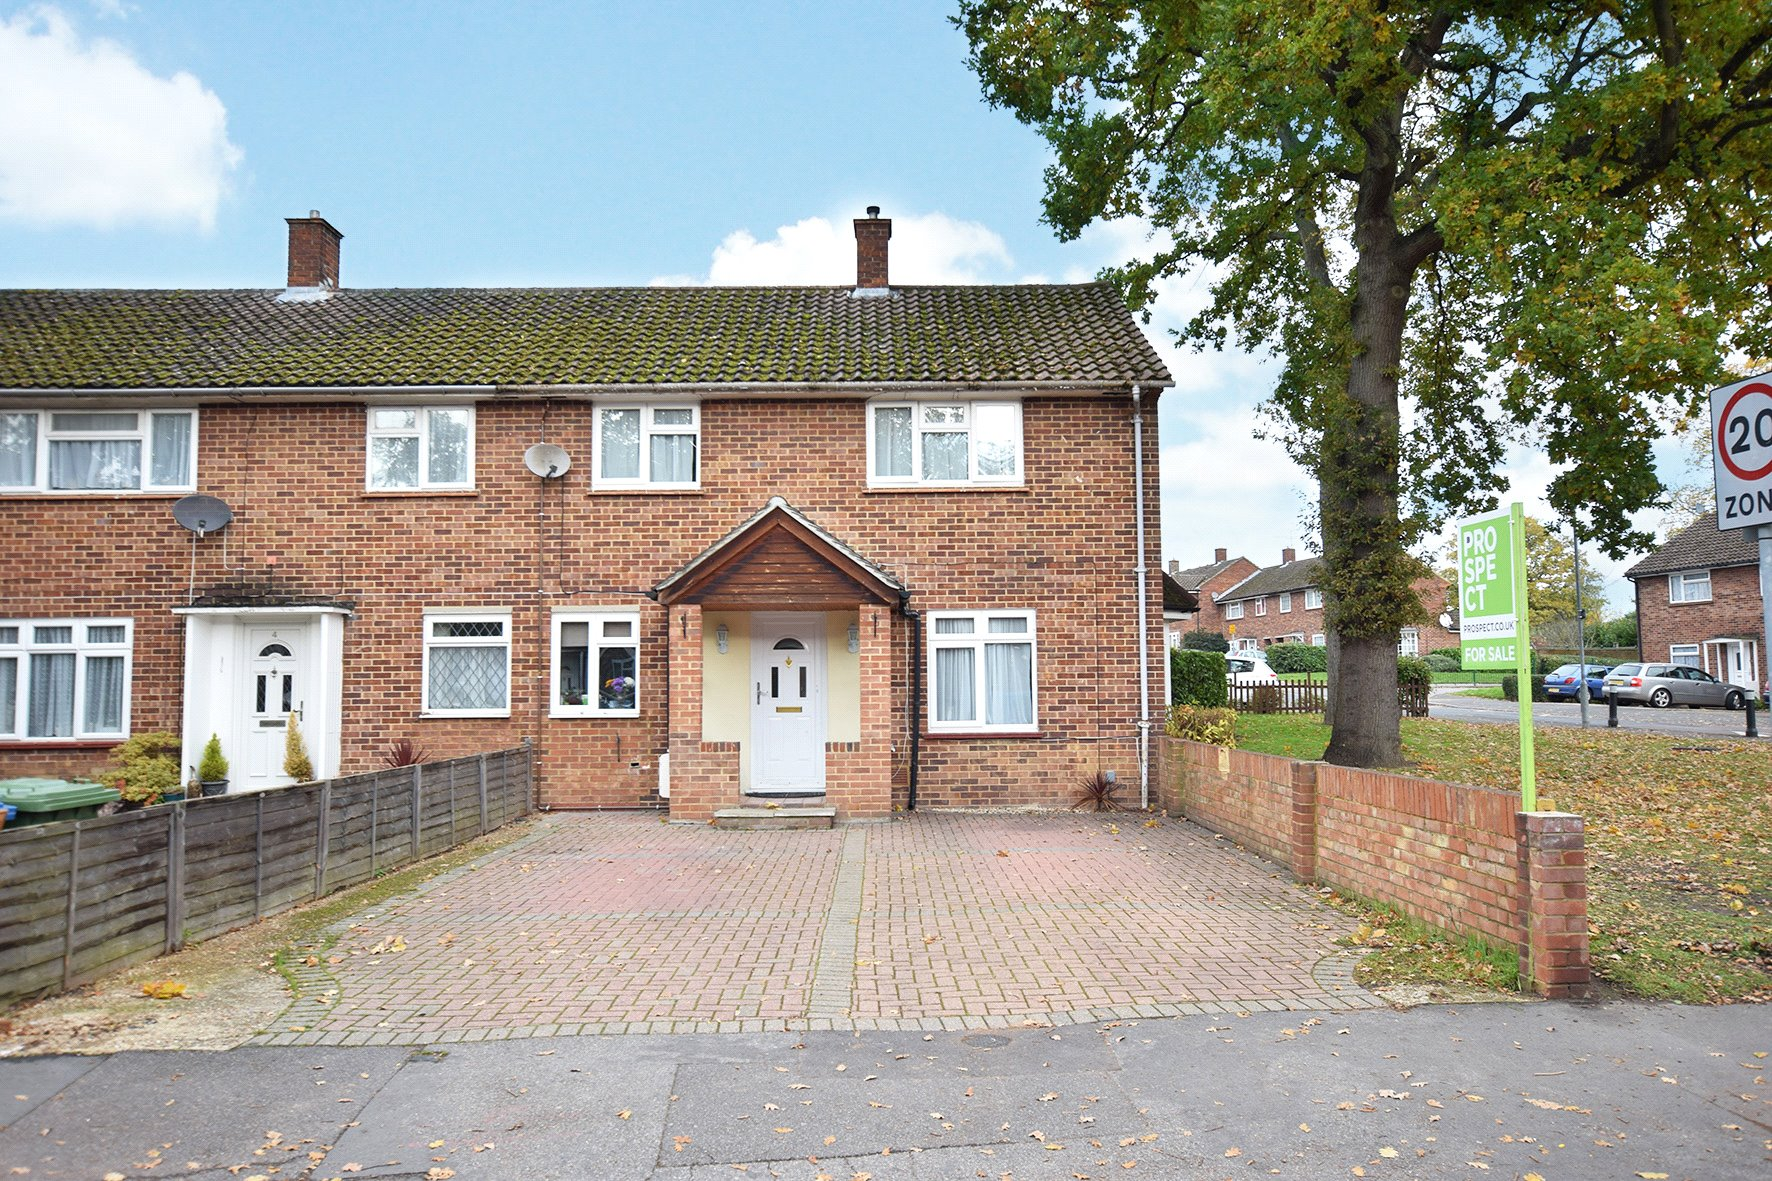 3 Bedrooms End Of Terrace House for sale in Kingsmere Road, Bracknell, Berkshire, RG42